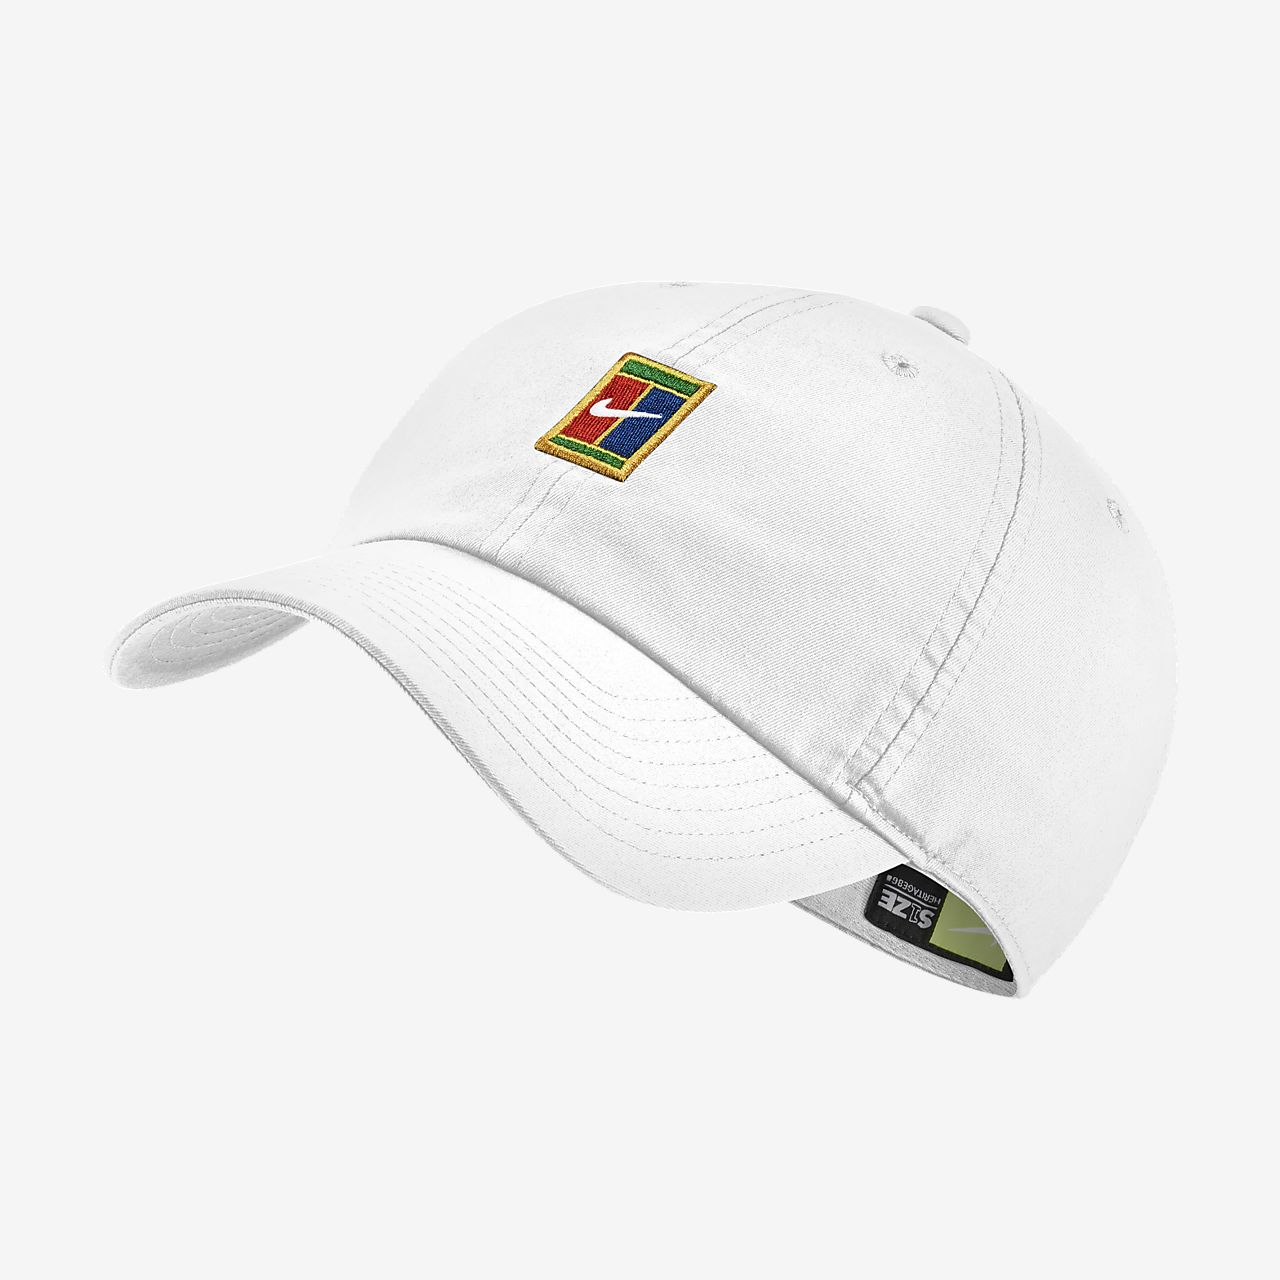 fe0872d60f5e7 ... shop nikecourt heritage 86 adjustable tennis hat 78093 4e85d cheap nike  court sportswear aerobill ...